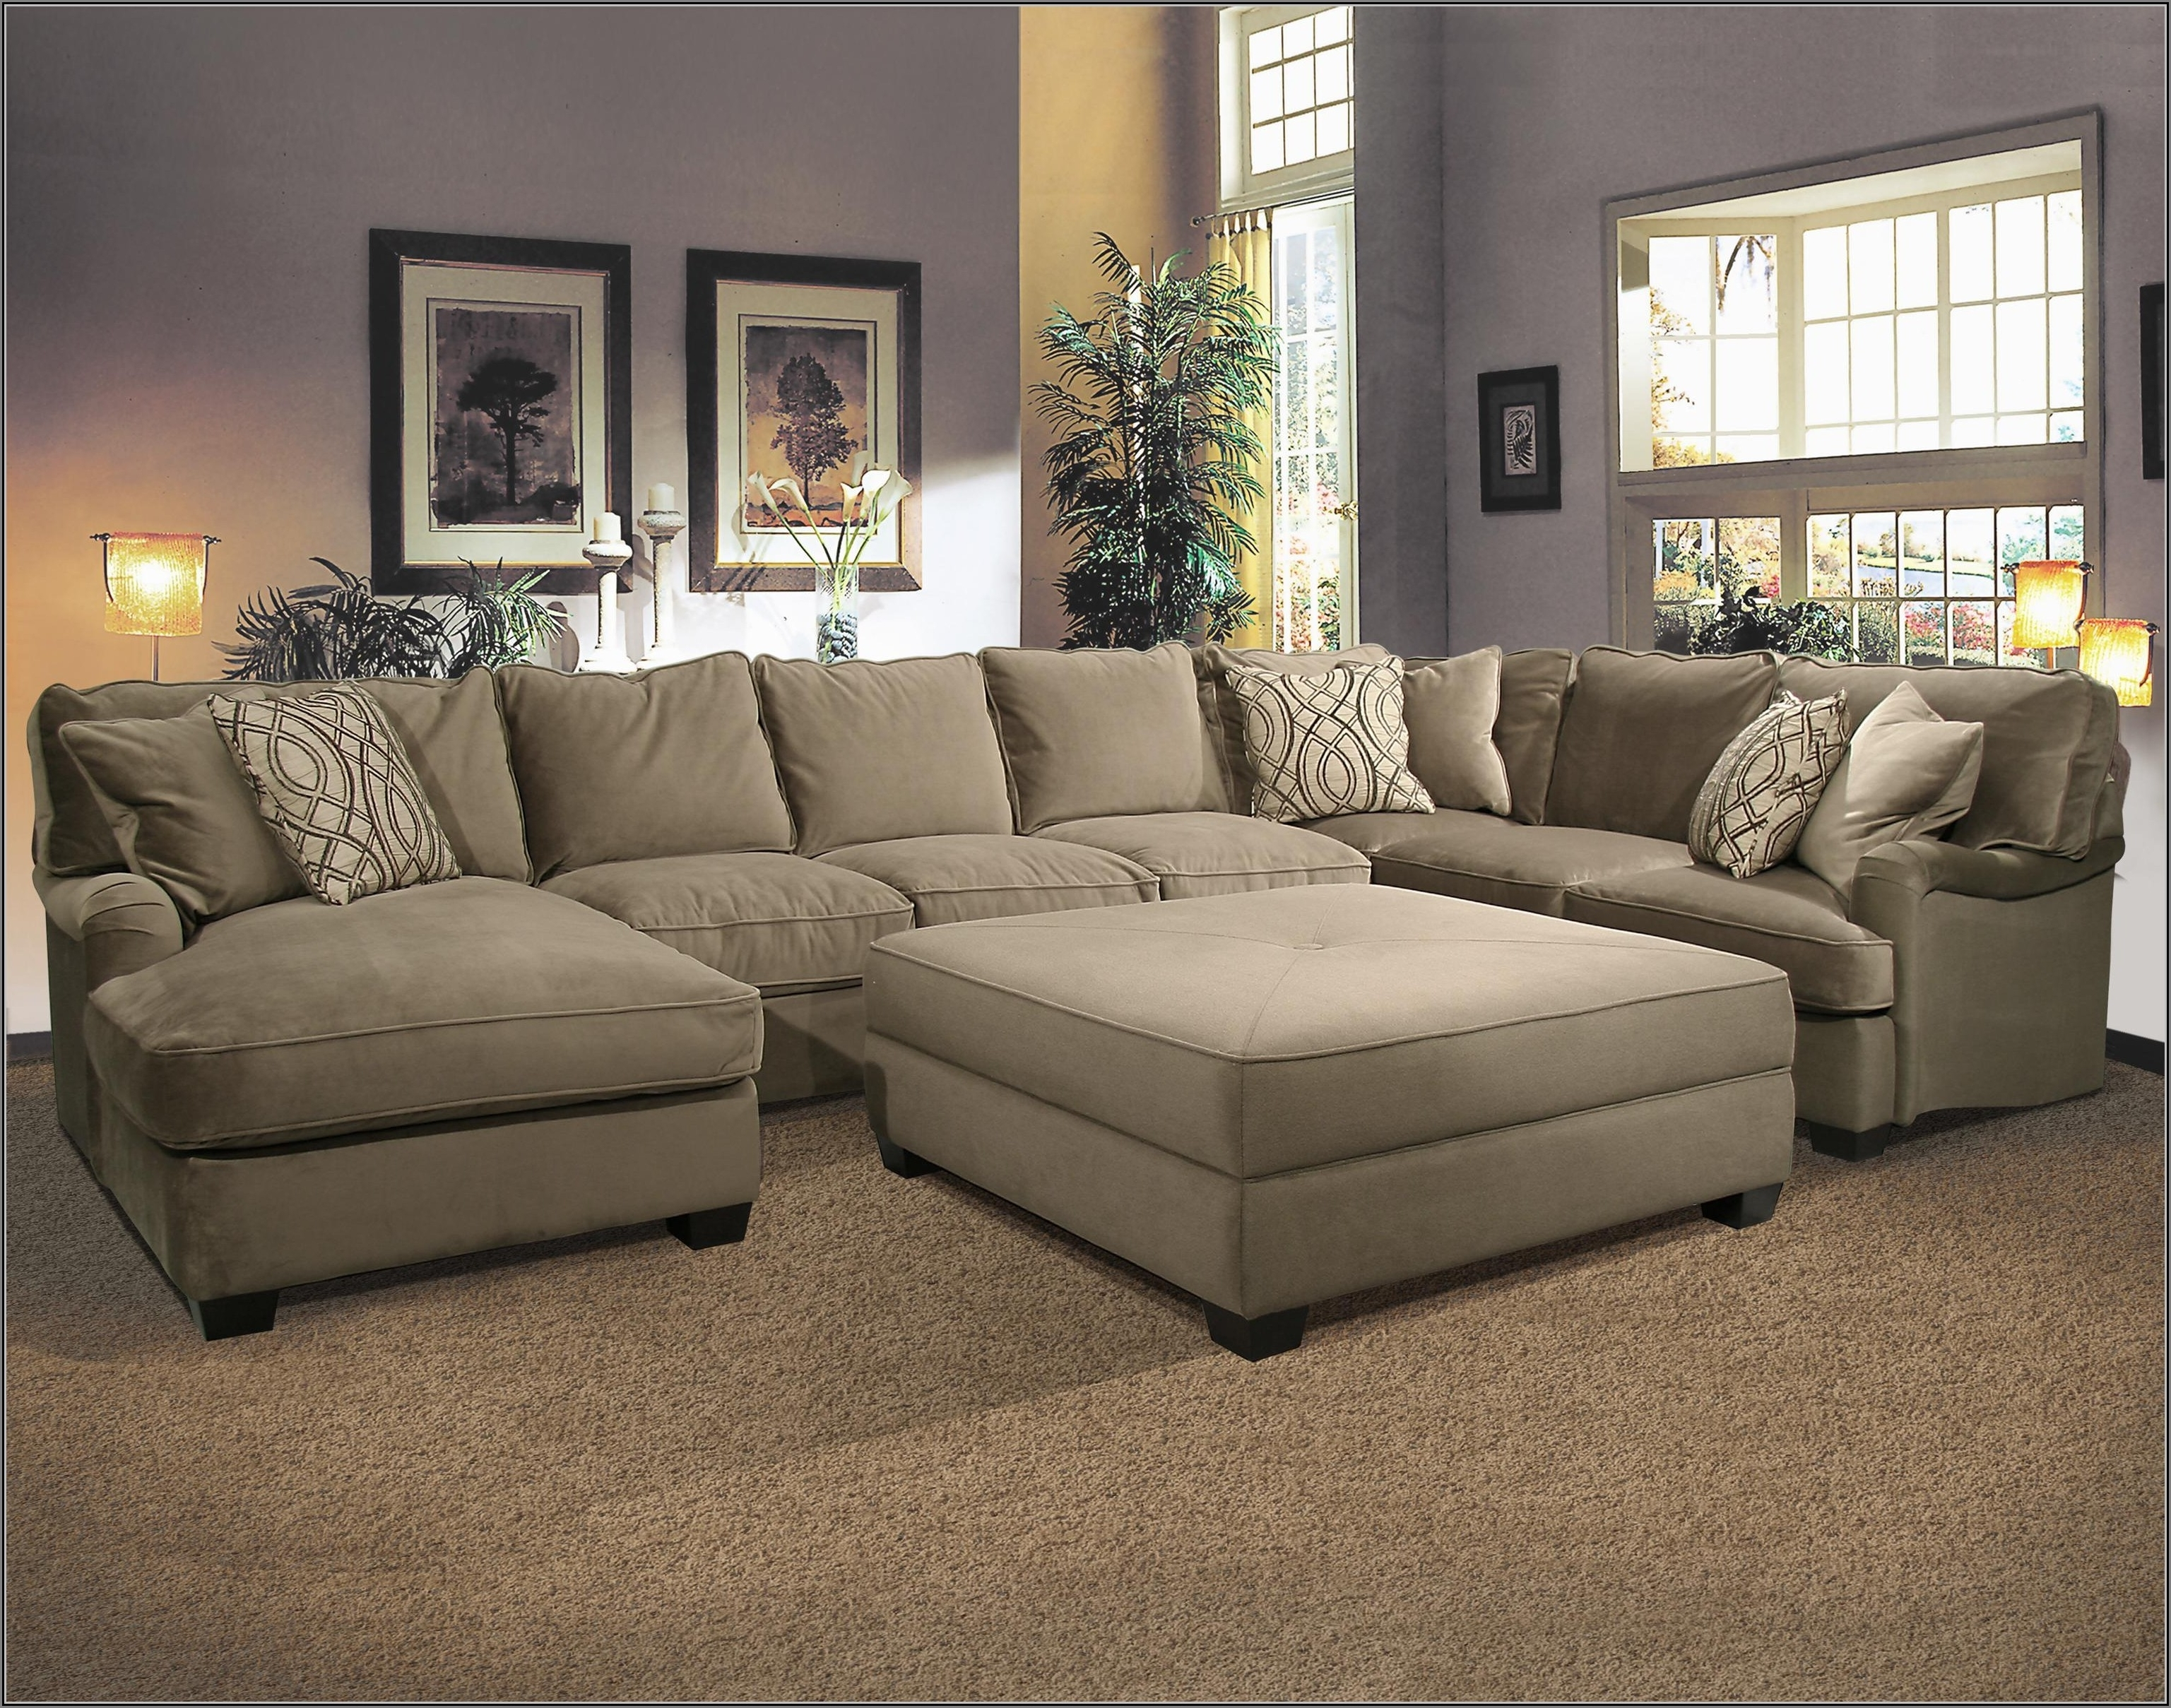 Sectional Sofa With Large Ottoman Hotelsbacau Com Intended For In Most Recent Sectionals With Ottoman (View 11 of 20)